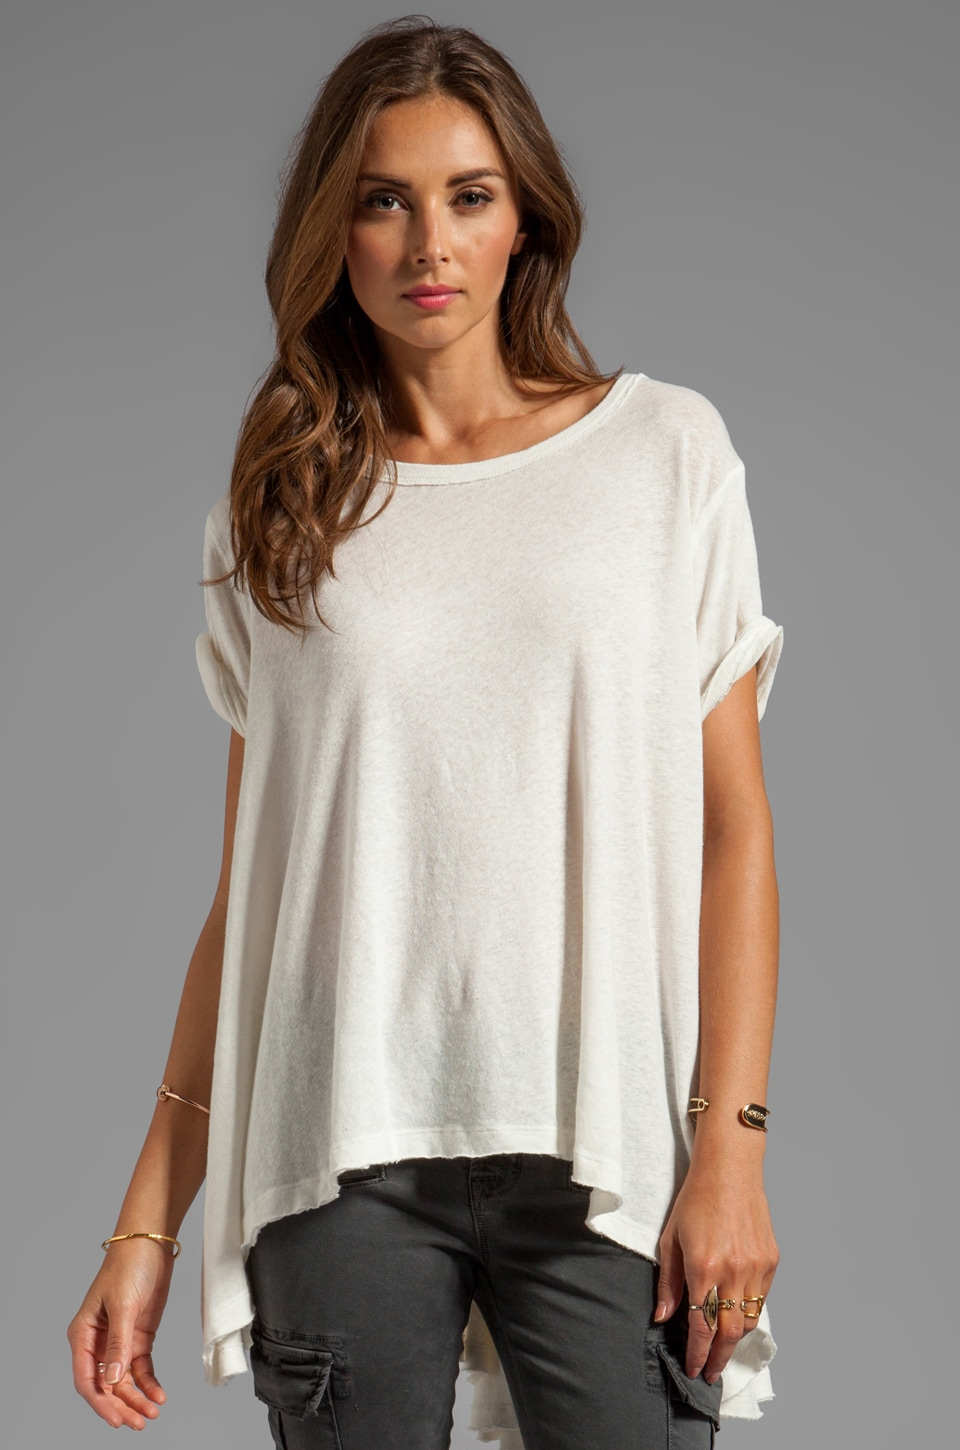 Free People Circle in the Sand Tee in Ivory